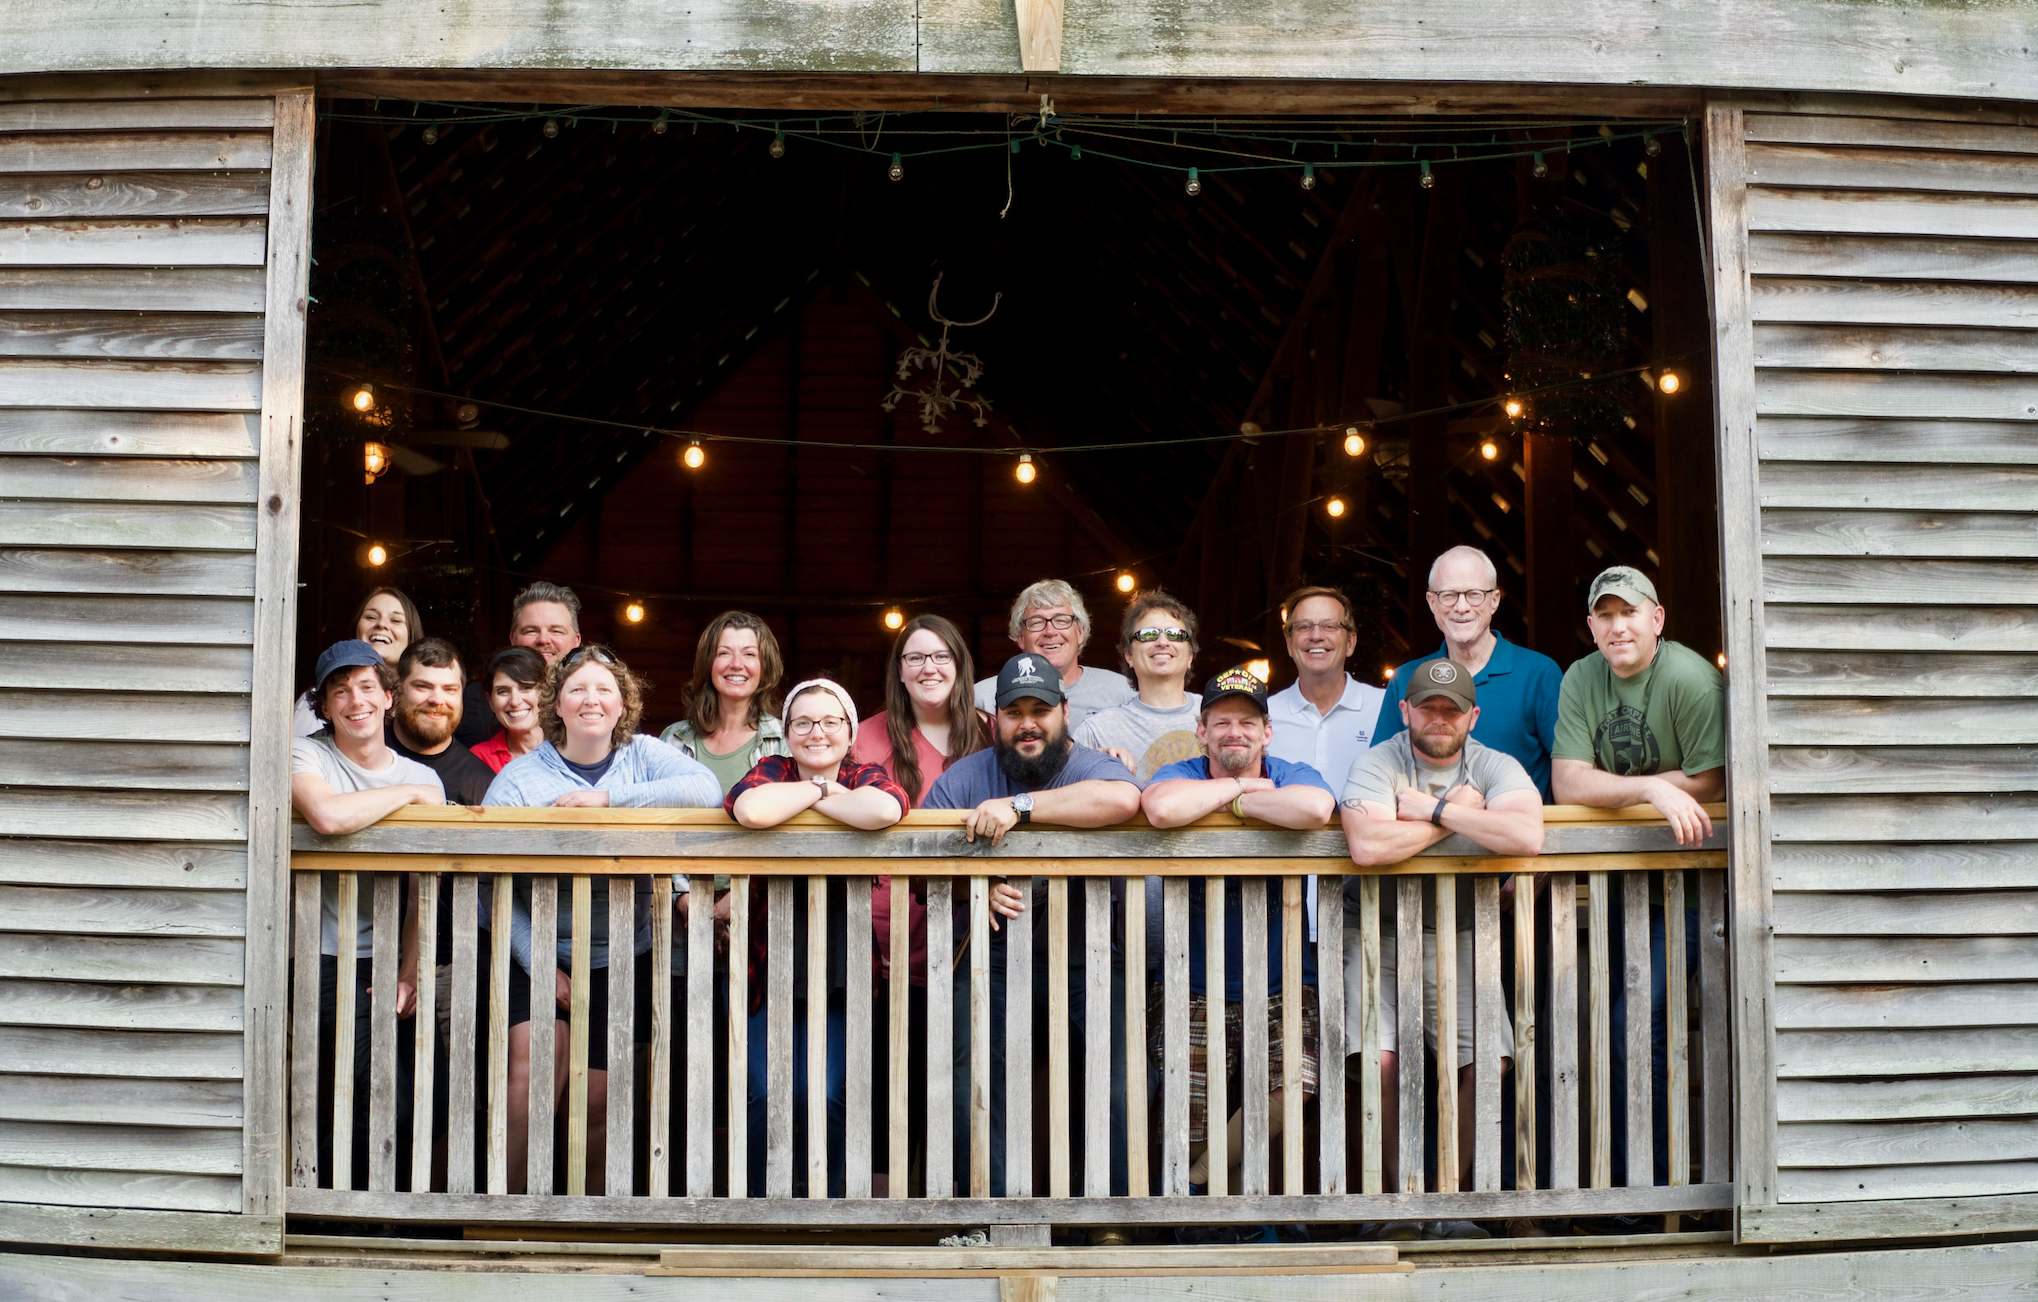 Participants, songwriters, and staff for our inaugural Nashville Music Therapy Retreat.